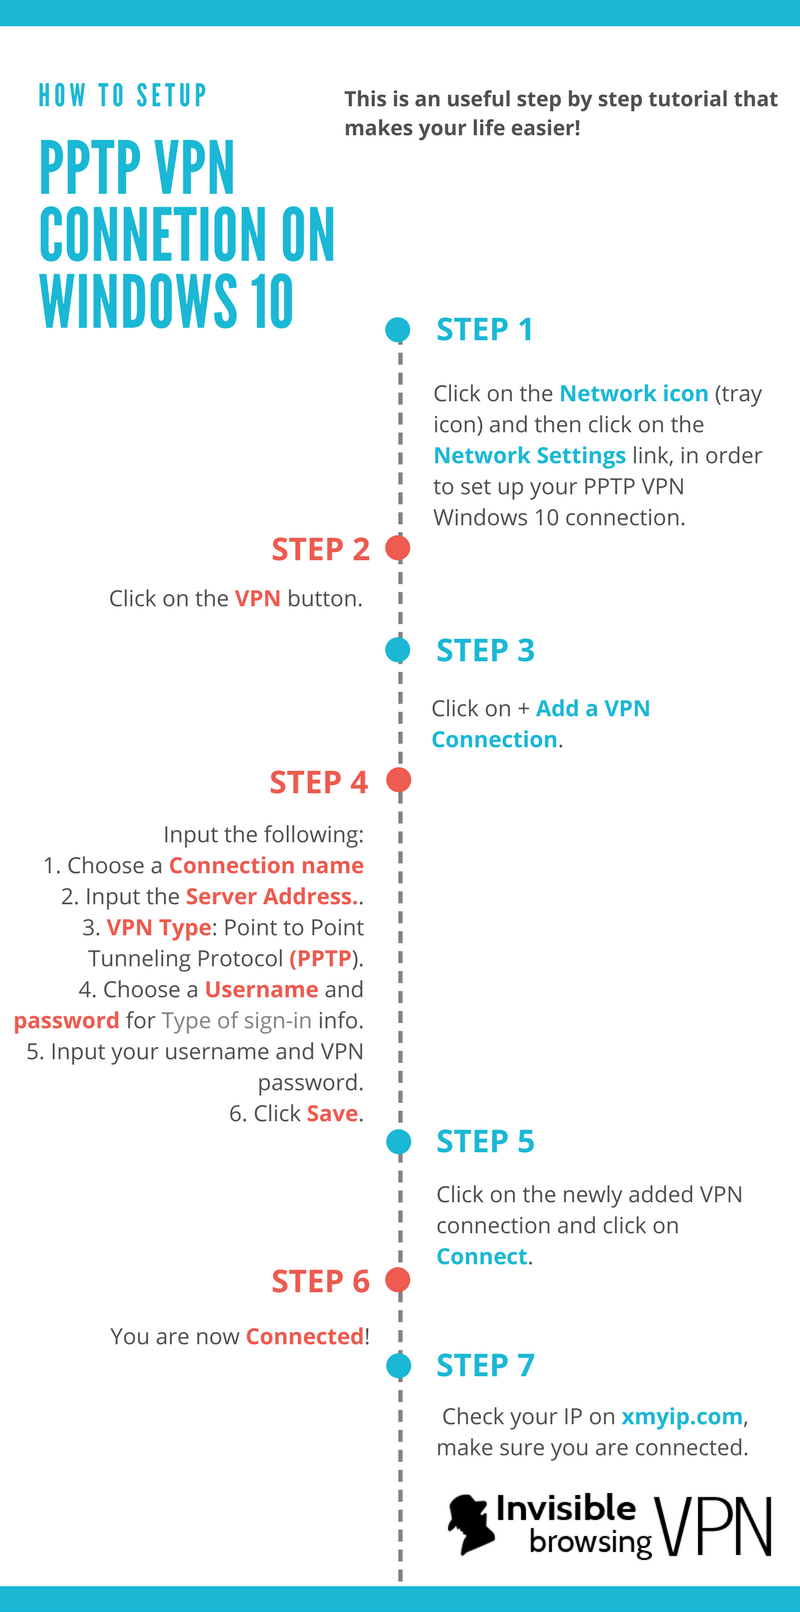 Easy step by step tutorial about how to setup a PPTP VPN